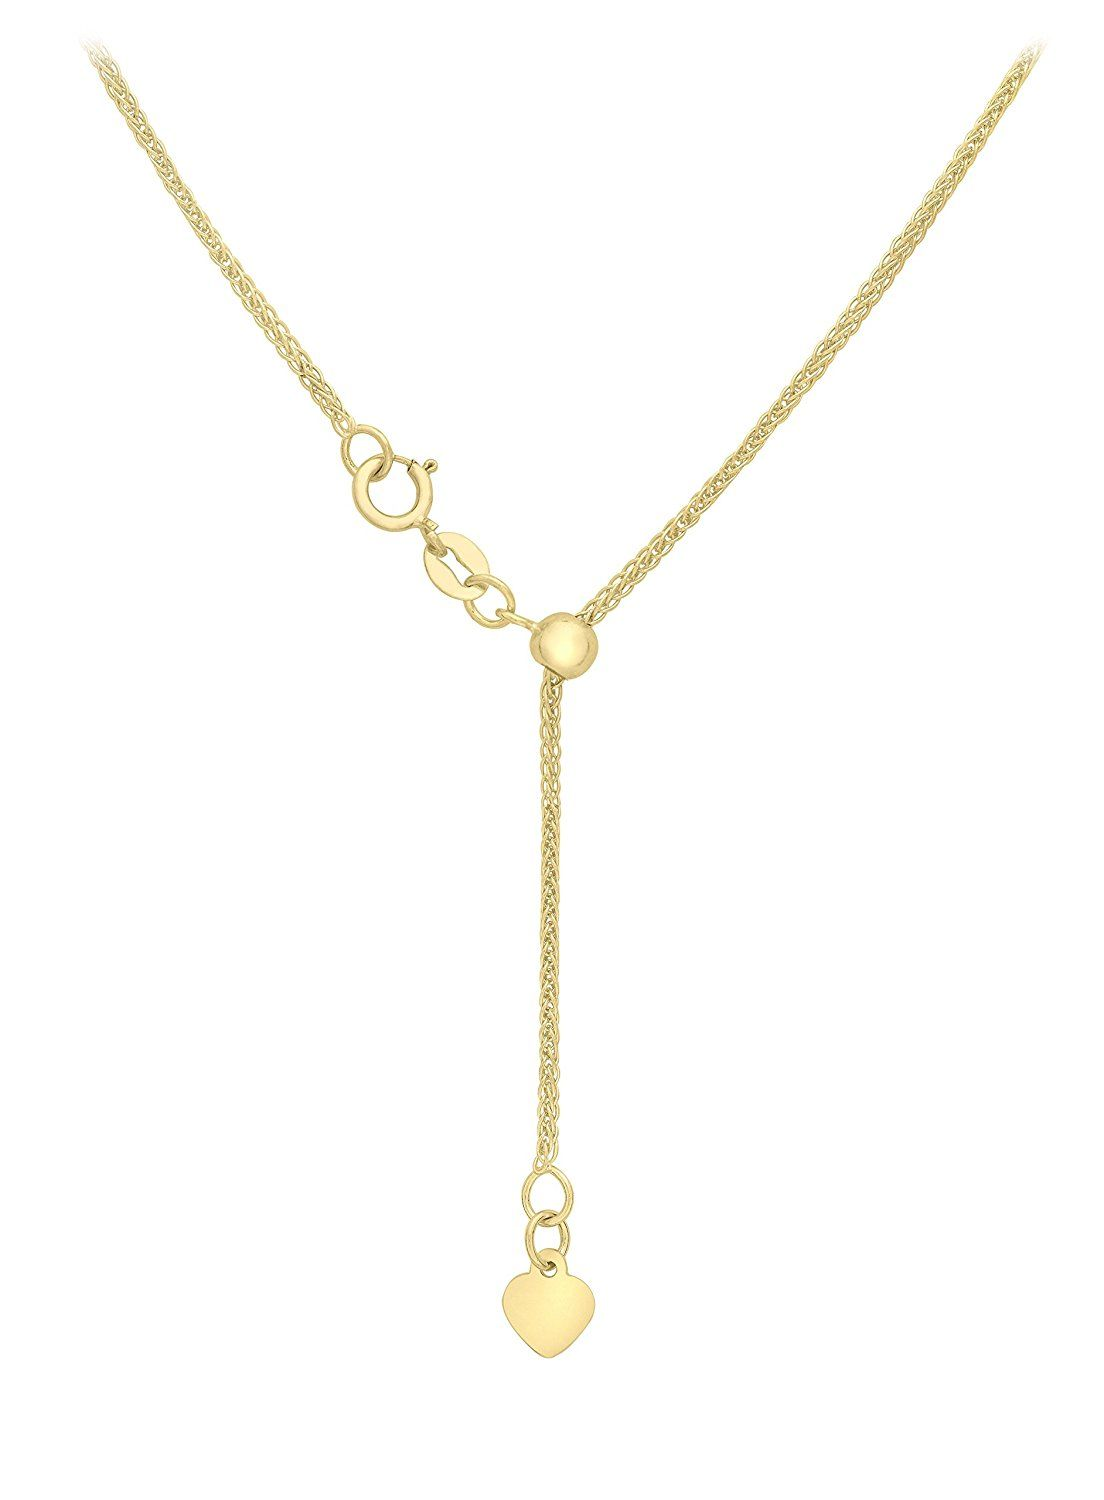 Carissima Gold Women's 18 ct Gold 1 mm Spiga Chain Necklace YrnLSPX